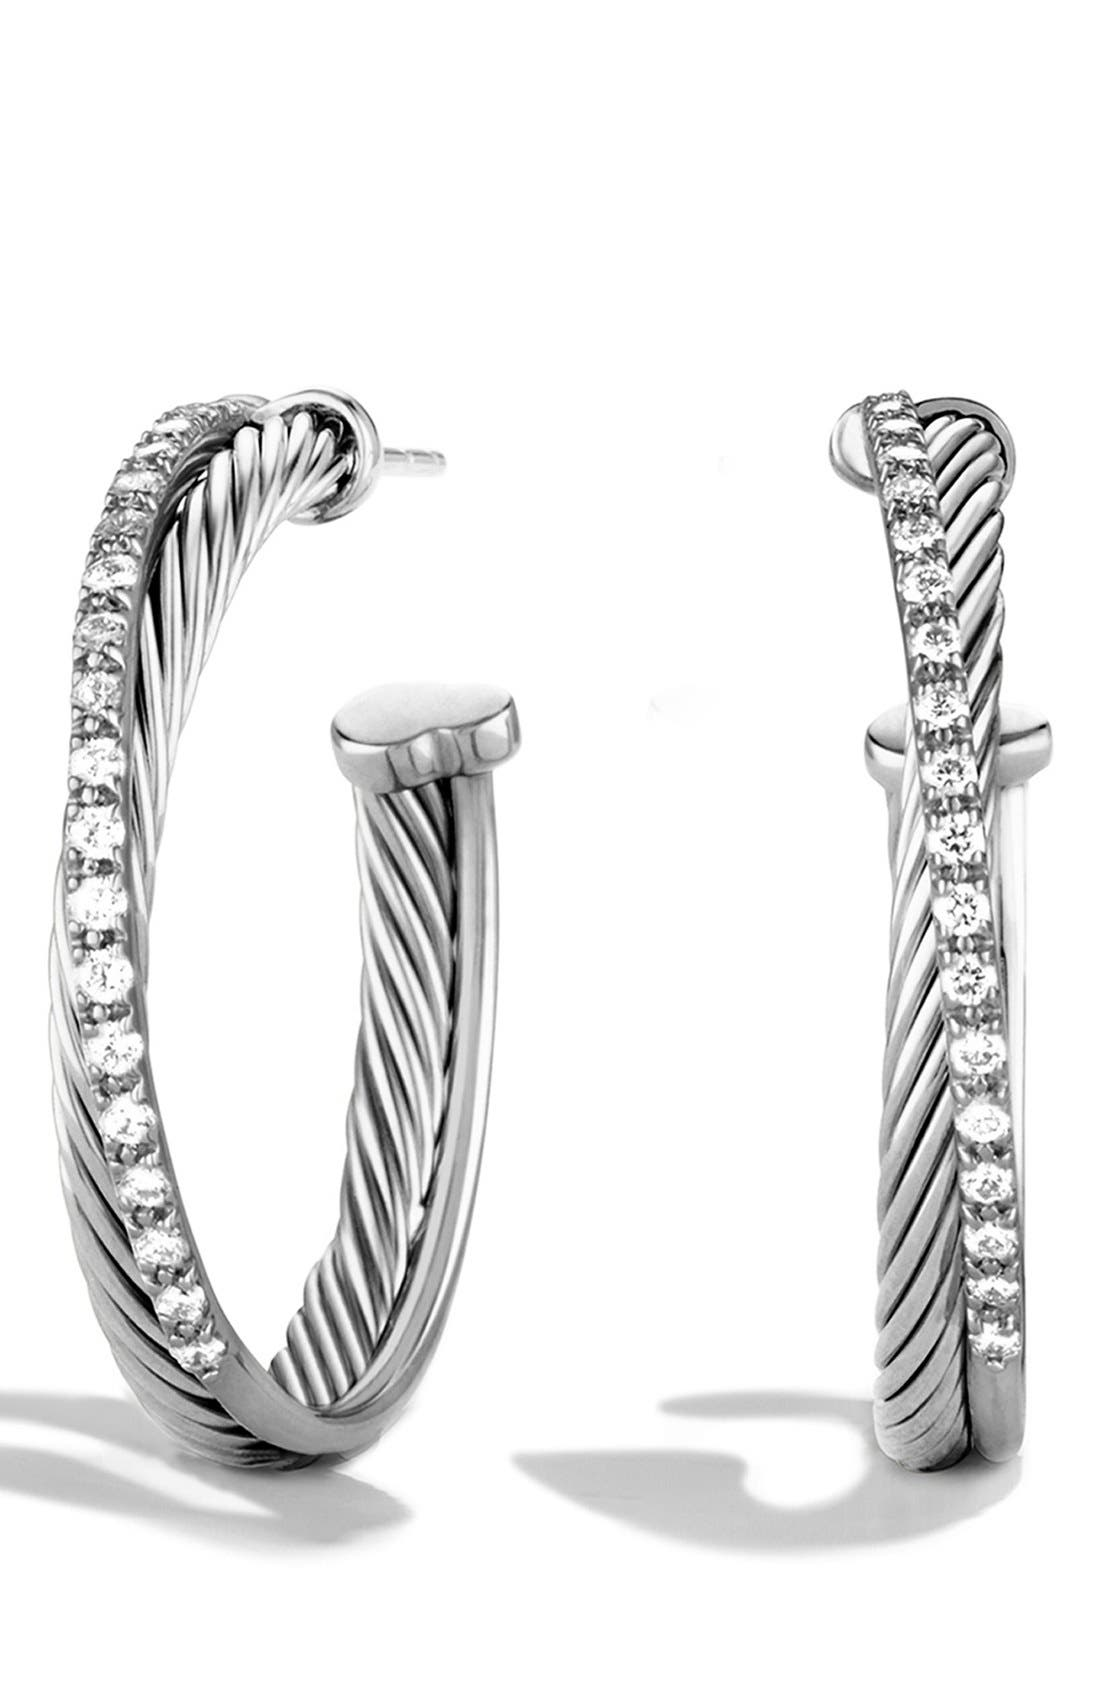 'Crossover' Hoop Earrings with Diamonds,                             Main thumbnail 1, color,                             040